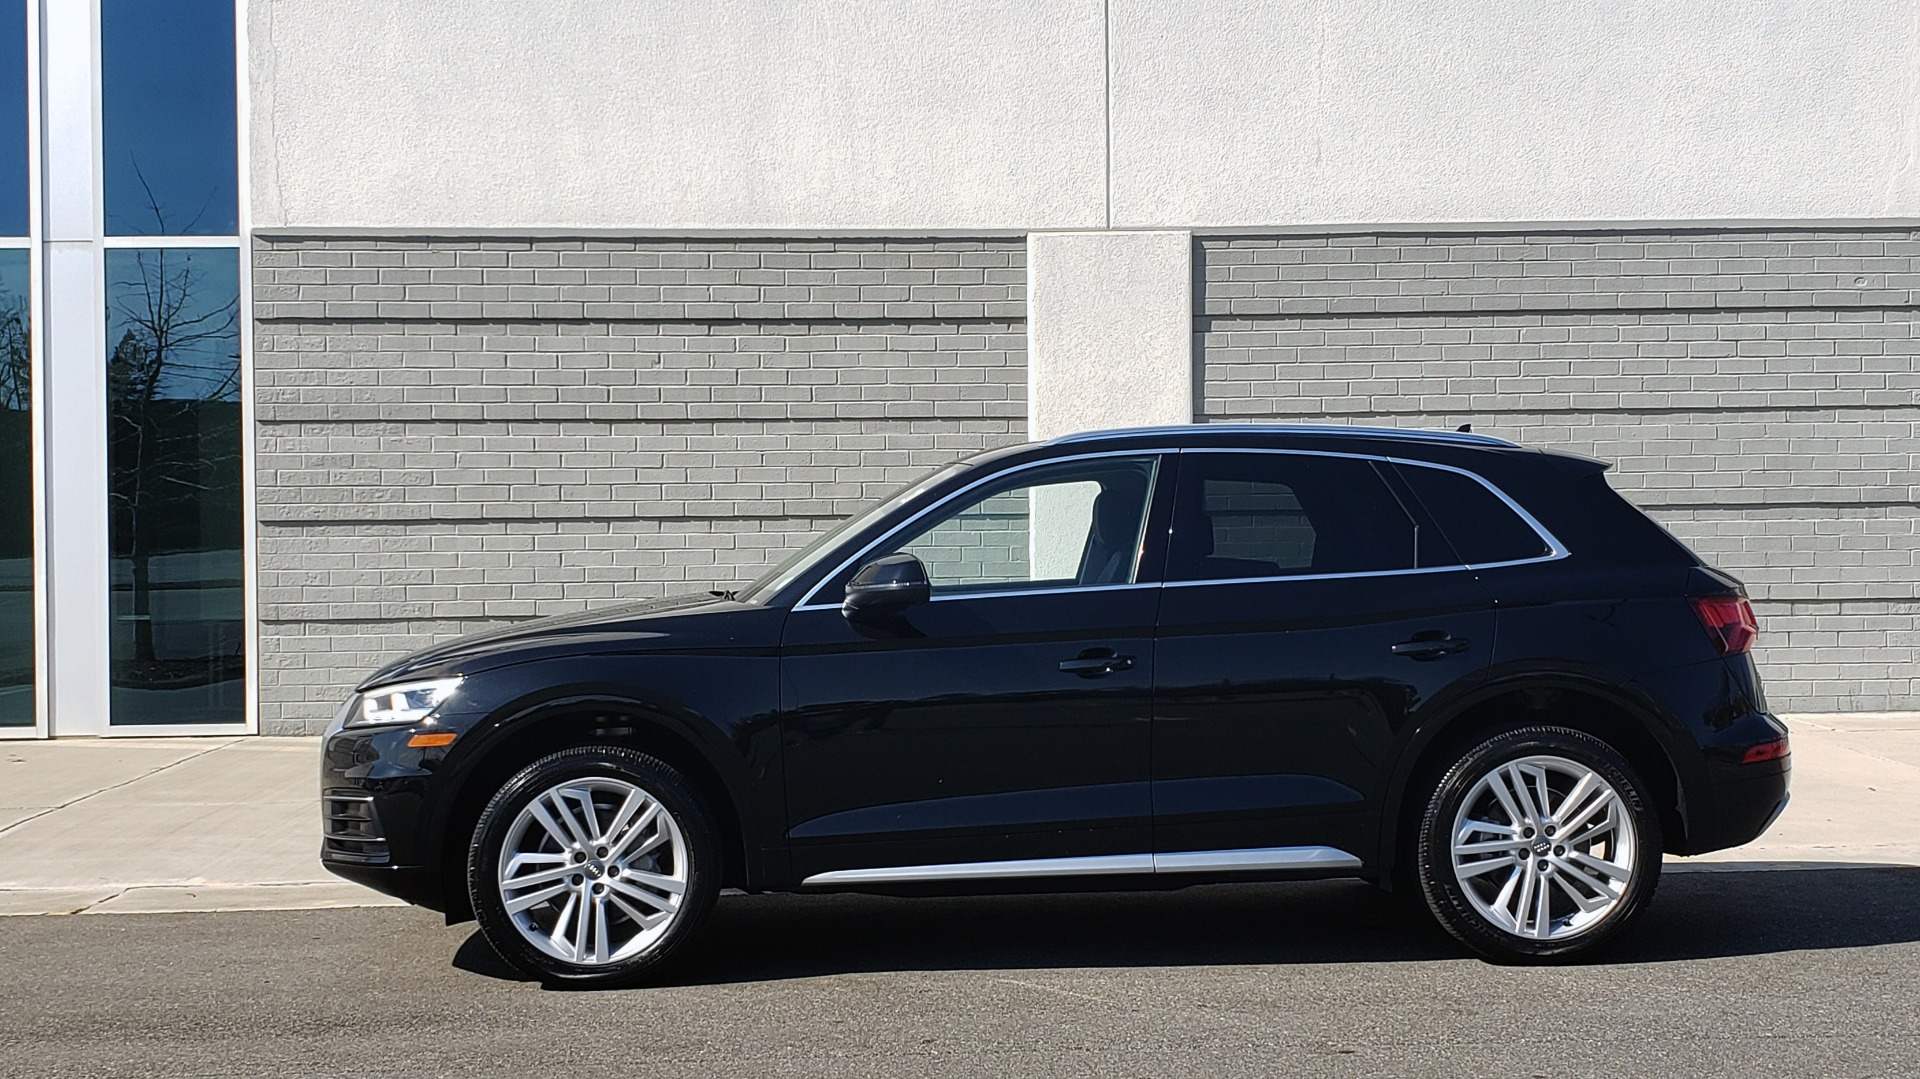 Used 2018 Audi Q5 PREMIUM PLUS / NAV / PANO-ROOF / CLD WTHR / REARVIEW for sale $30,435 at Formula Imports in Charlotte NC 28227 4